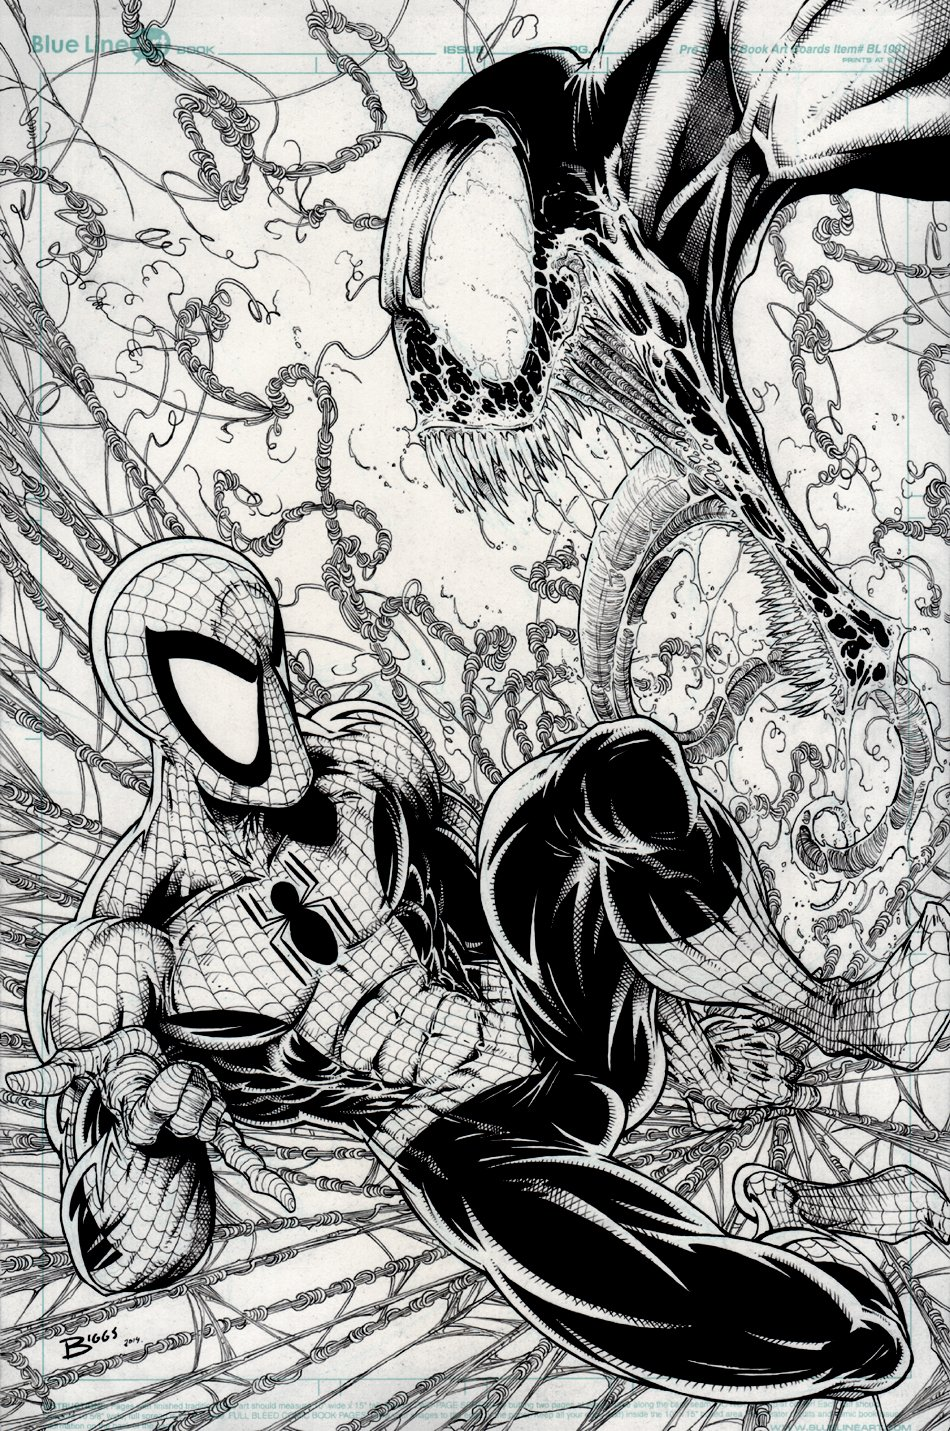 Spider-Man Vs. Venom Incredibly Detailed McFARLANE-ESQUE Pinup (2014)